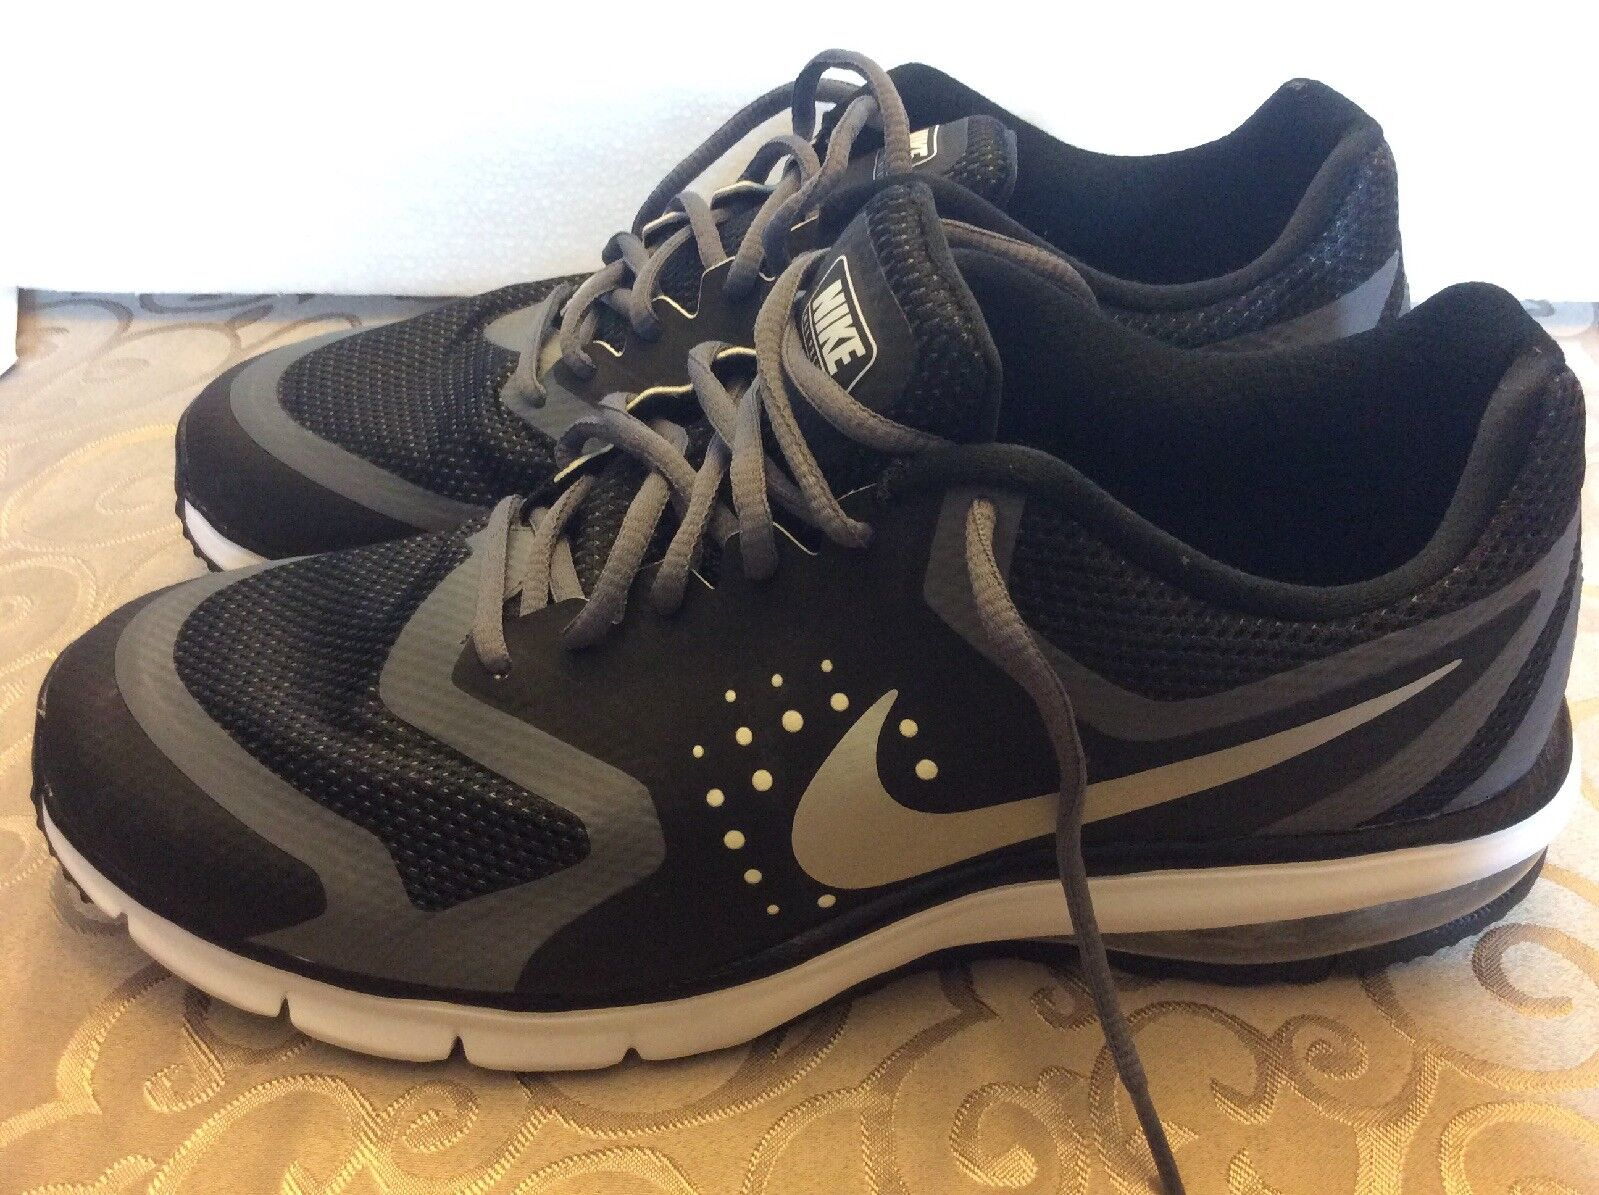 Nike Max Premiere Running shoes Men Size 11 New Black